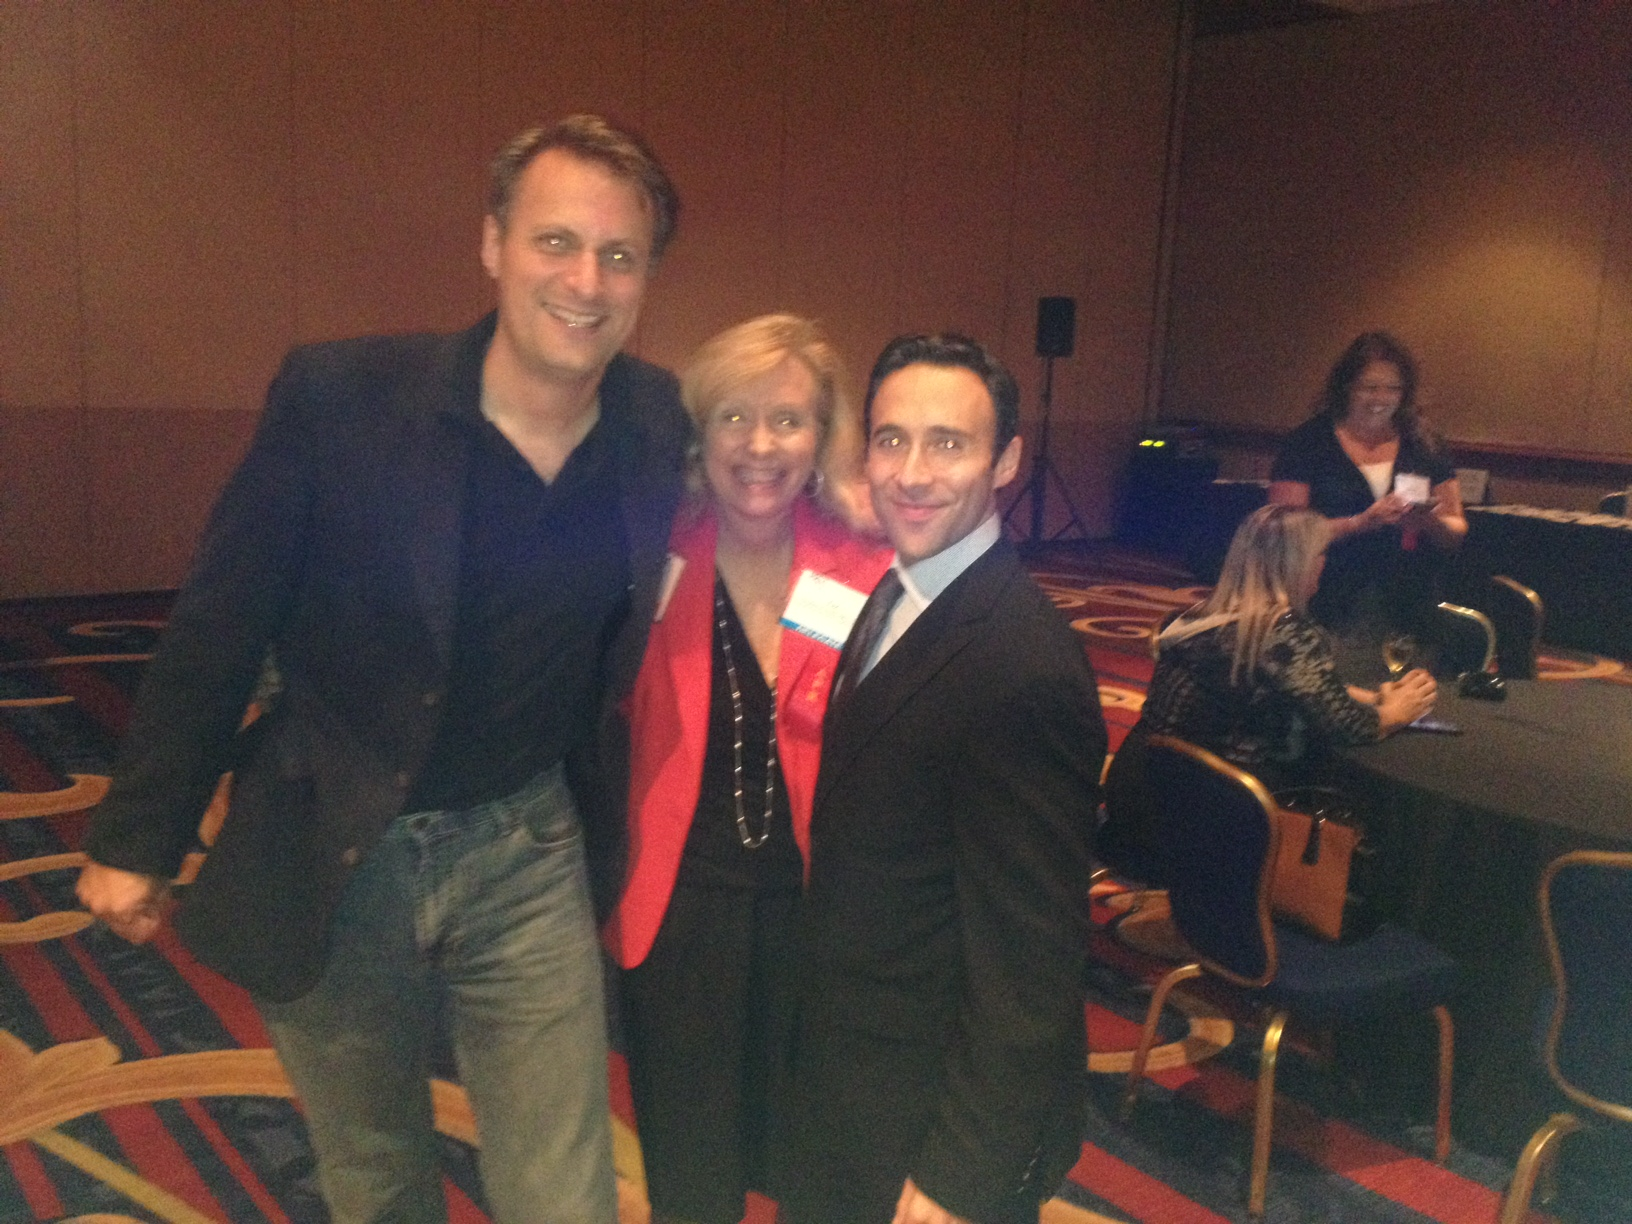 Liz Smith, president of PRSA Central PA Chapter and chair-elect of the Mid-Atlantic District, with Thomas Becher Mid-Atlantic district chair (left) and Joe Cohen, chair of PRSA National